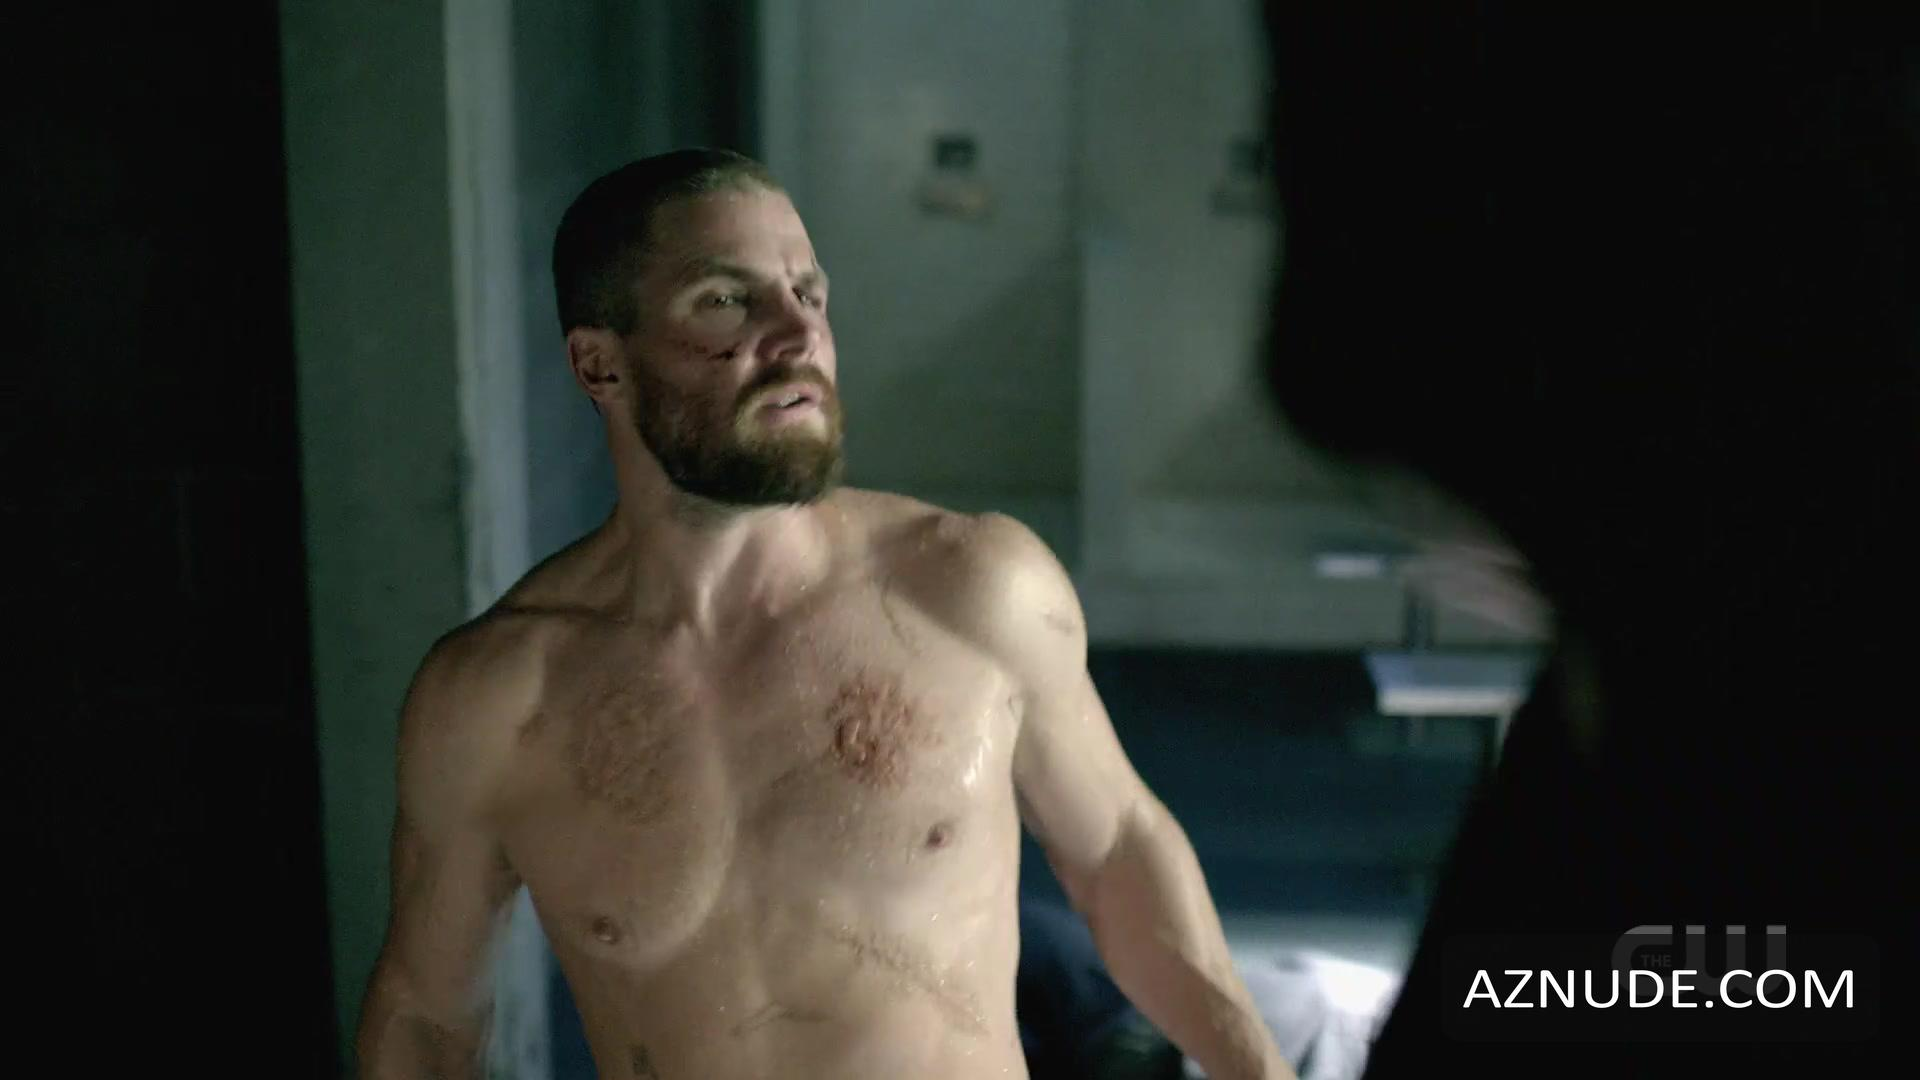 Stephen amell dick pic